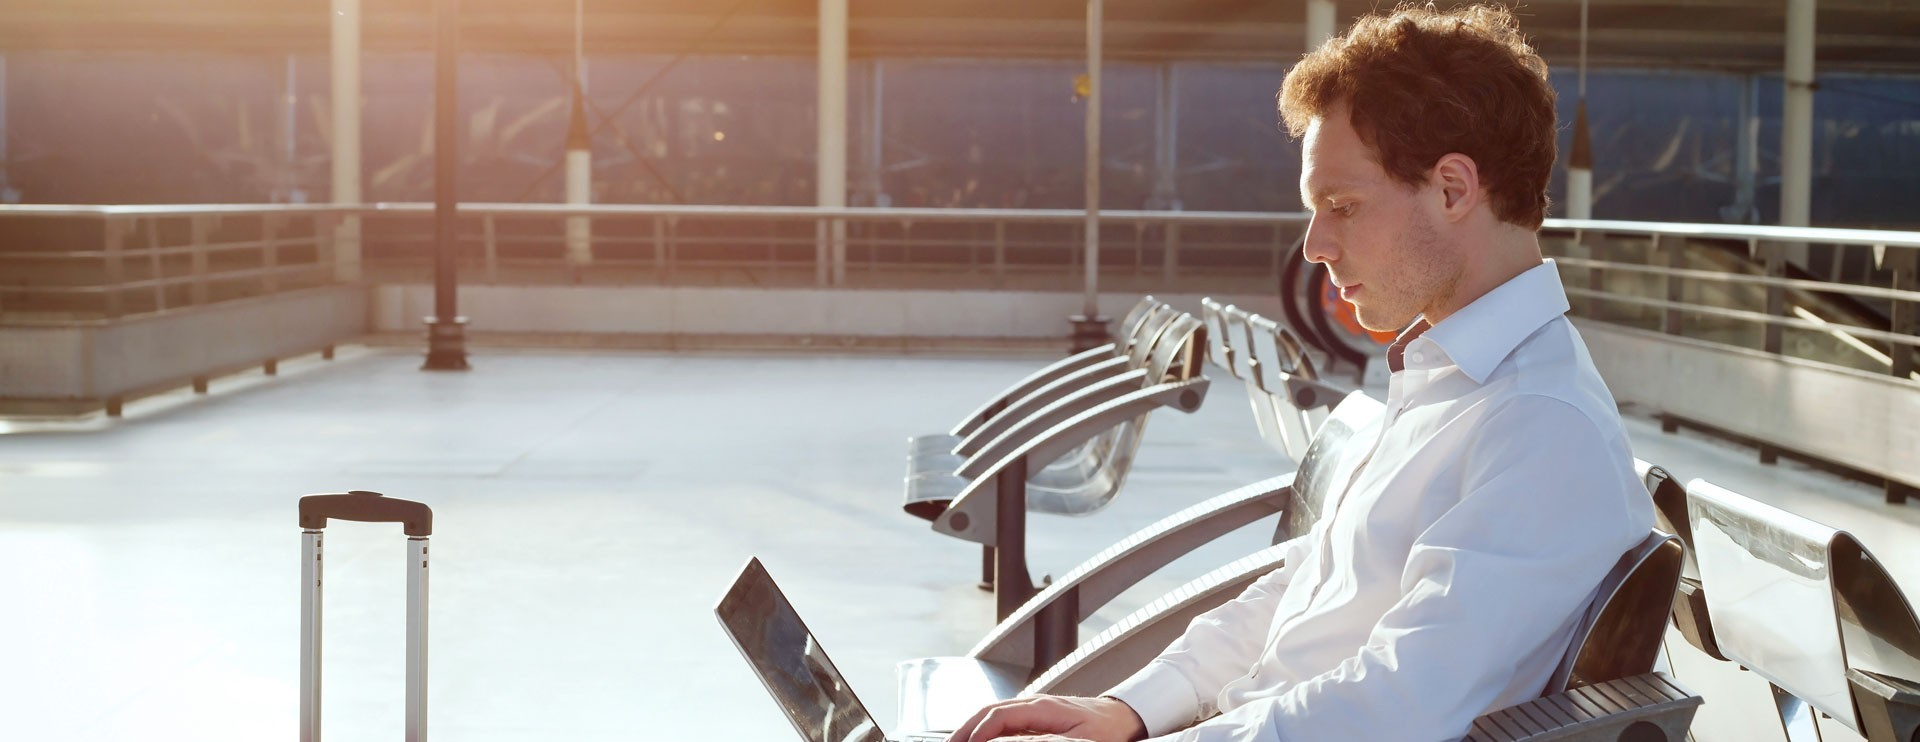 traveler sitting in airport with laptop open